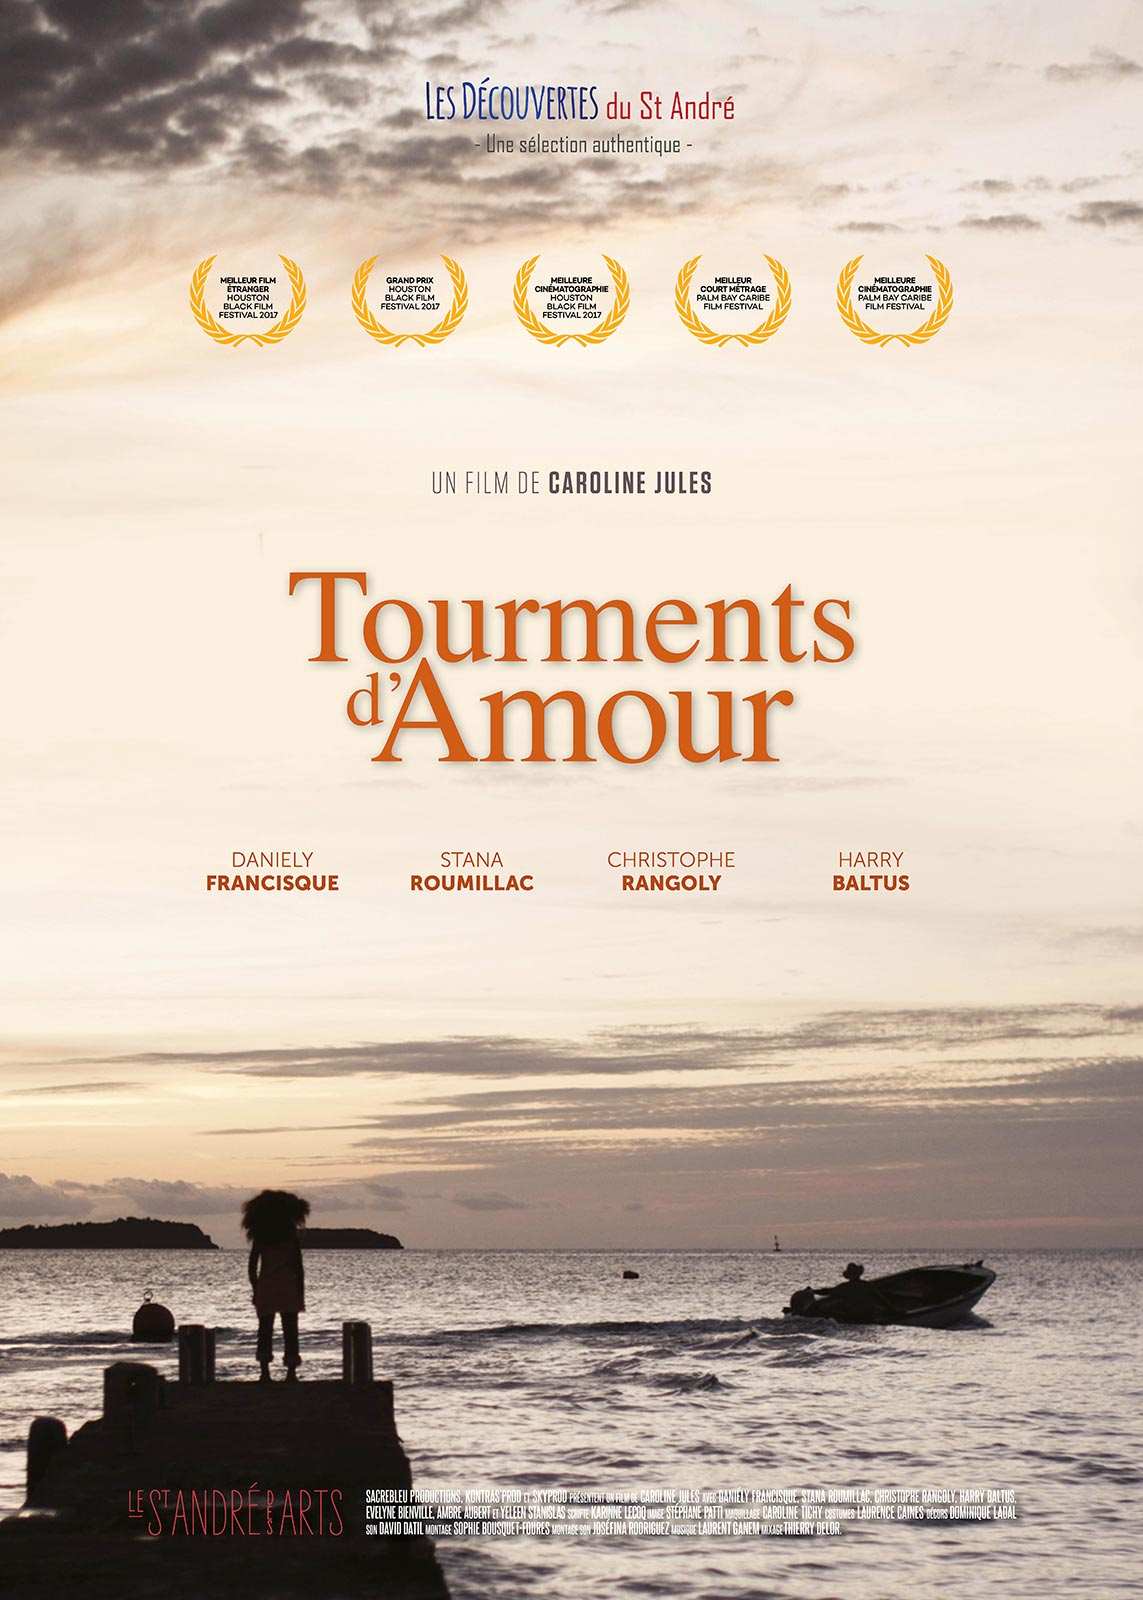 Tourments d'amour